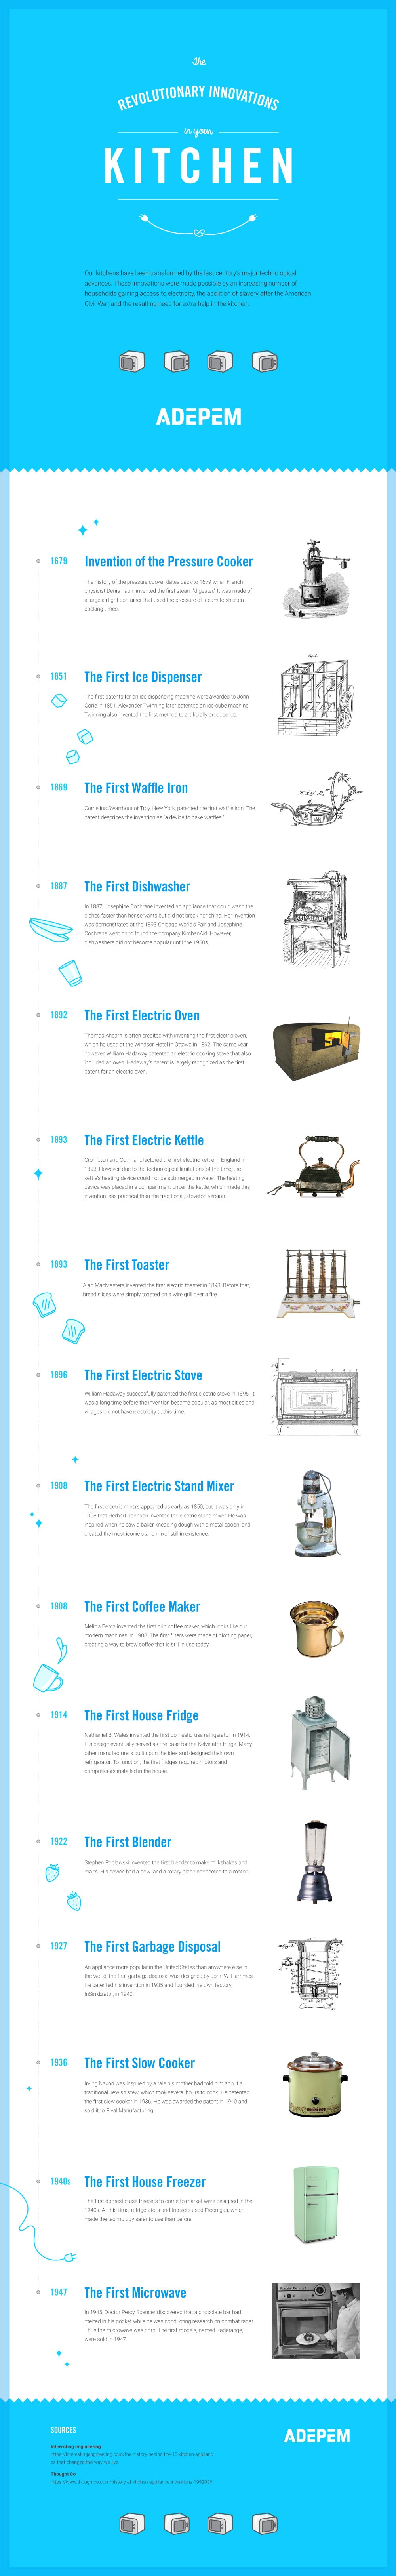 History of the Modern Kitchen: Kitchen Appliance Inventions and Innovations - Infographic